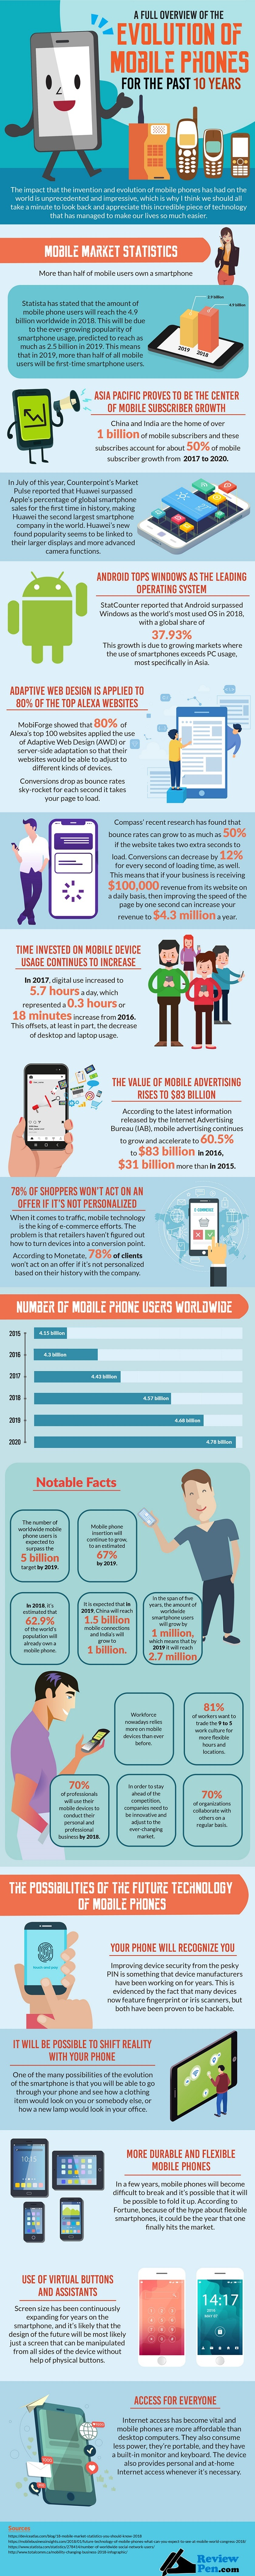 Poster Boy for Functional Technology: 10-Year Evolution of Mobile Phones - Infographic